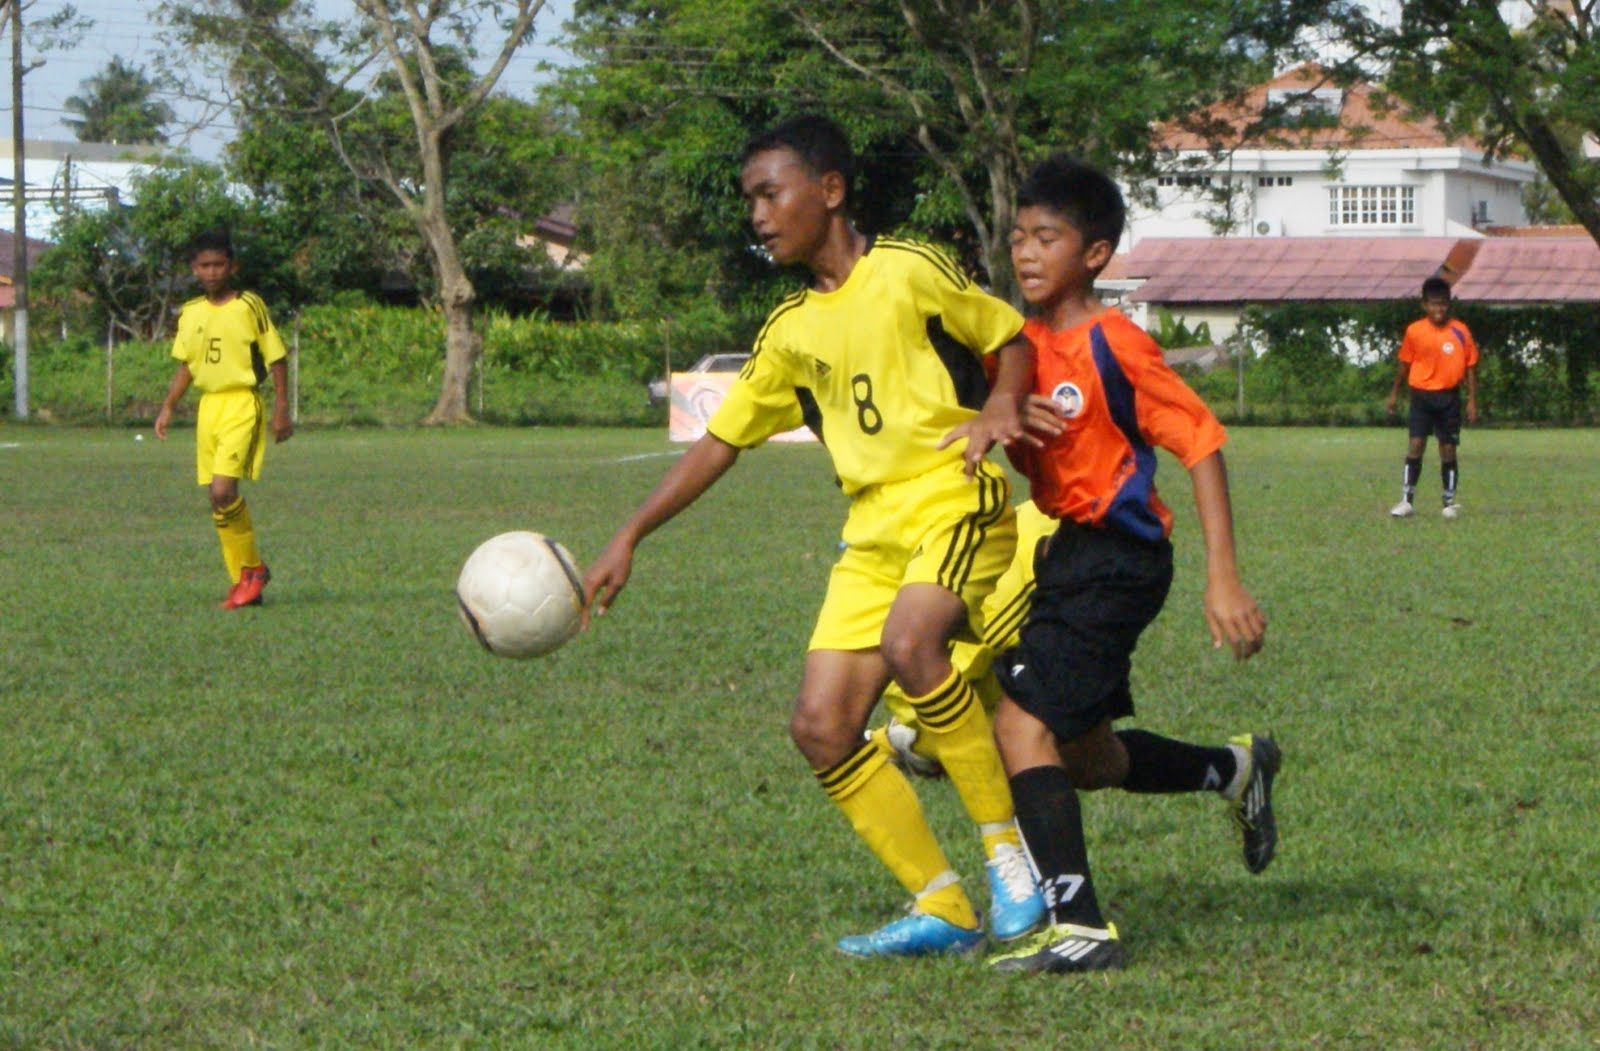 CC.03 – MBPJ (in al blue kit) vs Perlis (in all yellow kit)